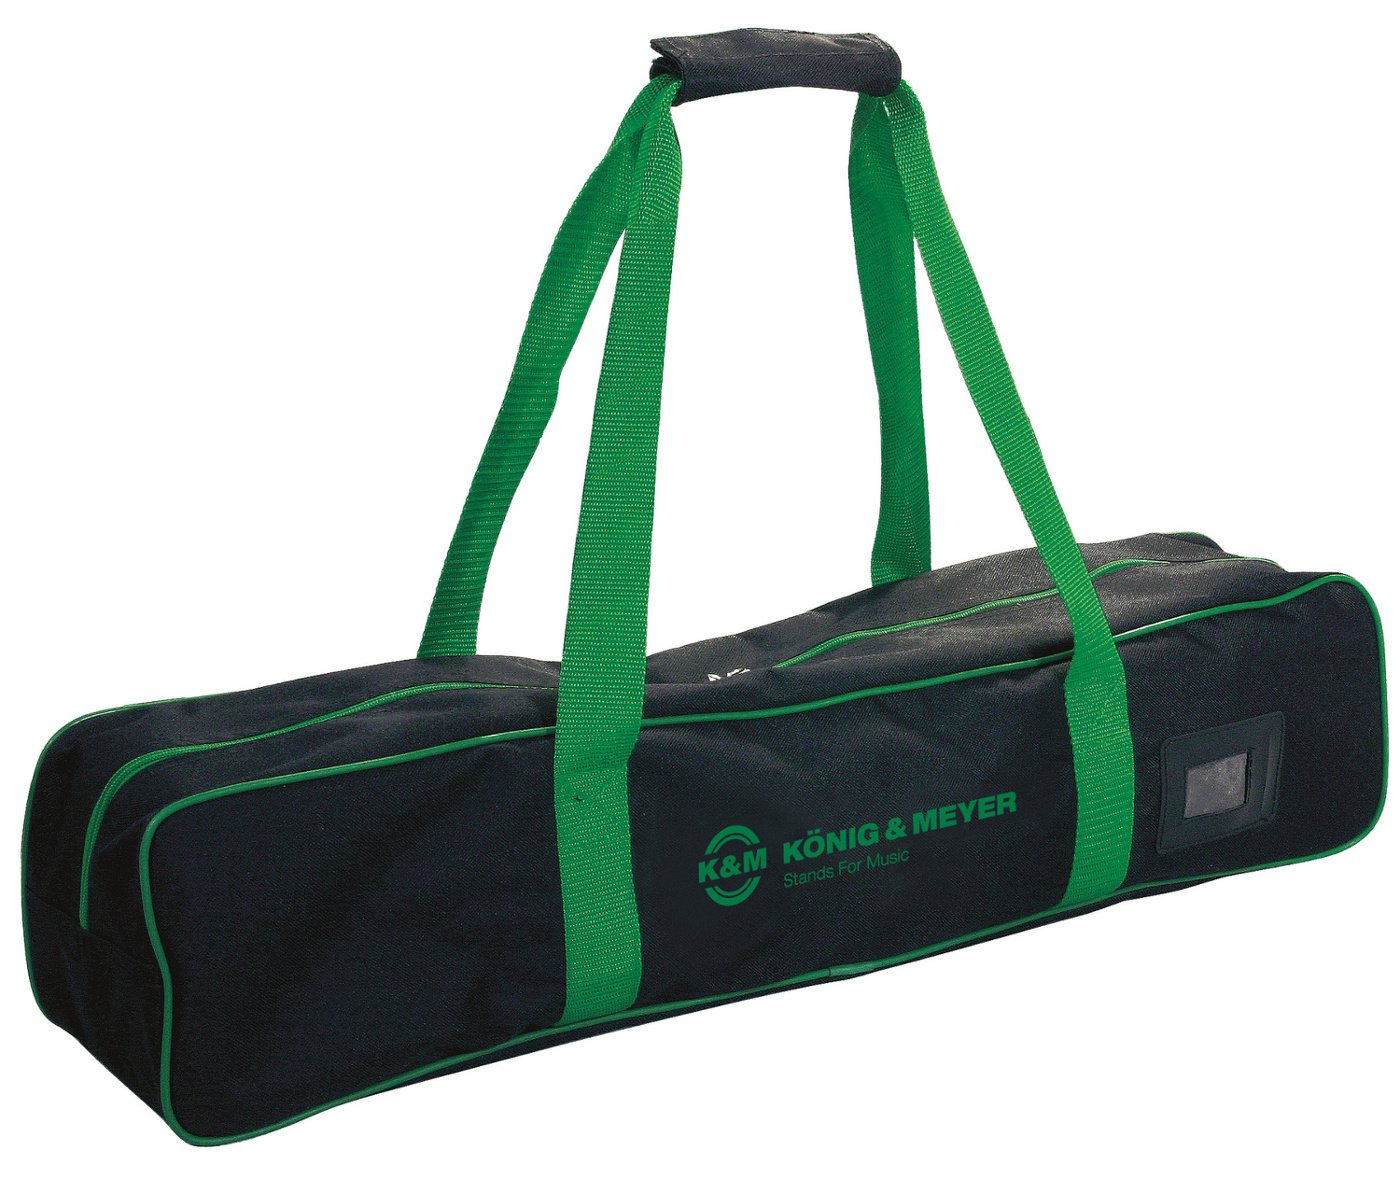 Carrying Case for Instrument Stands